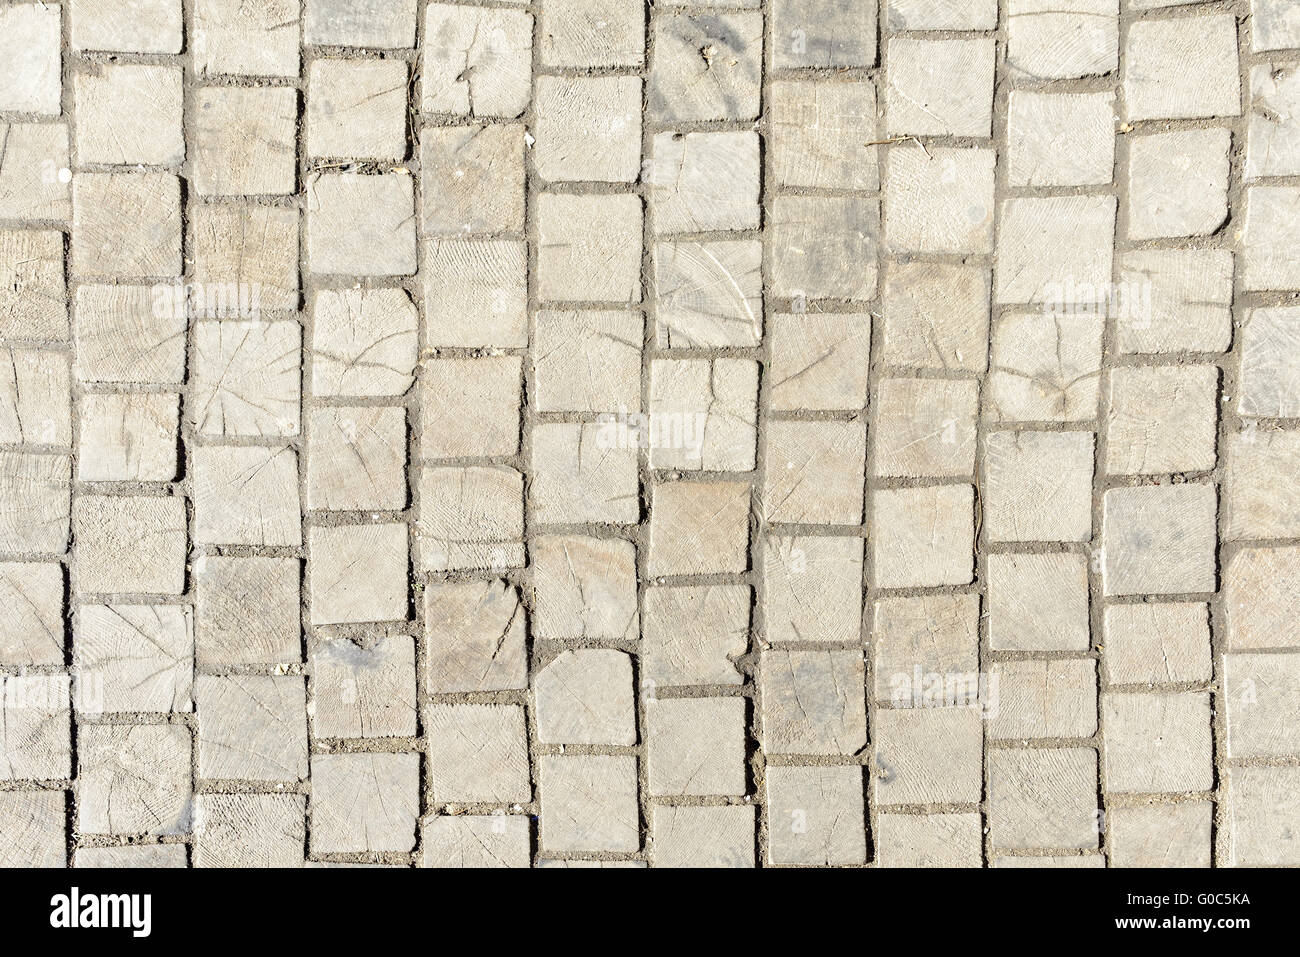 Wooden pavement - Stock Image